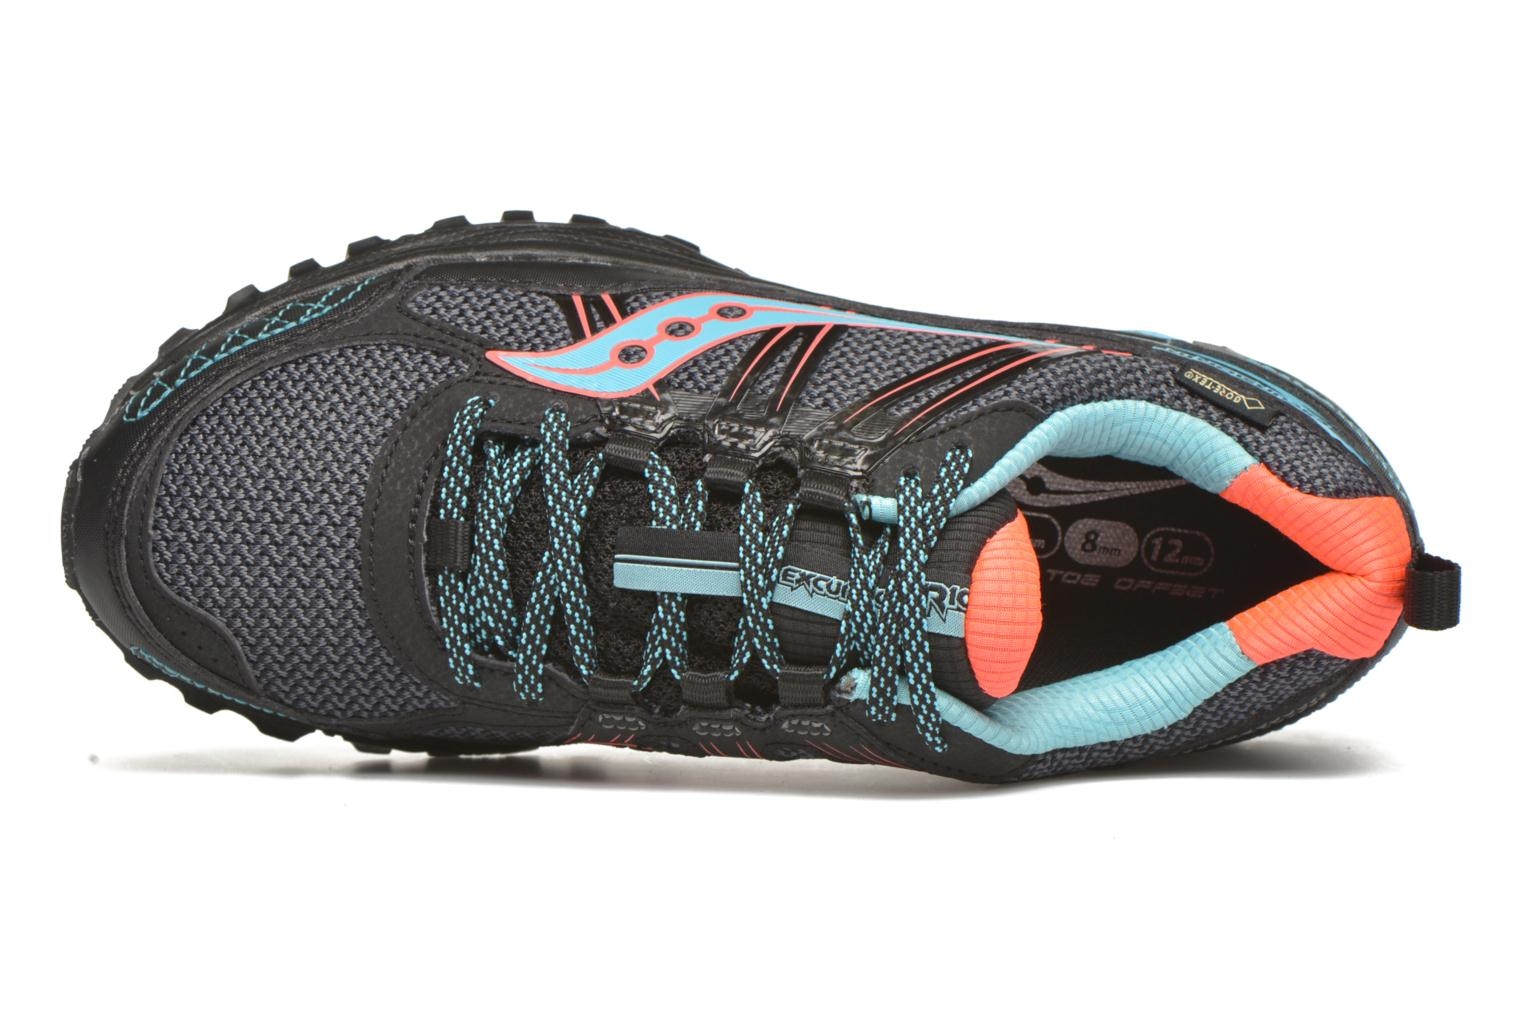 Excursion TR10 GTX W Black/Coral/Blue